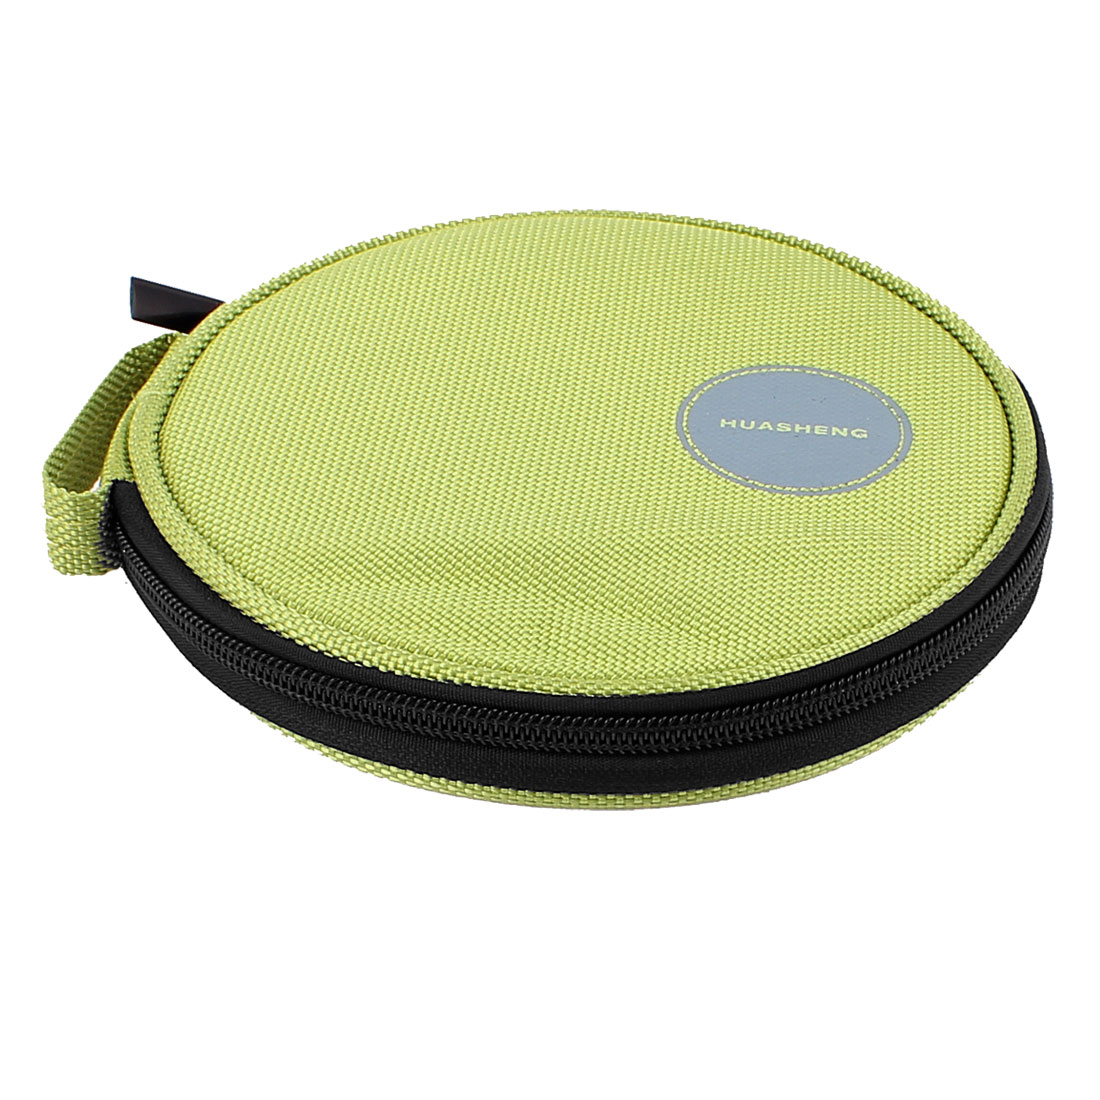 Nylon 10 CDs DVD CD Holder Bag Sheet Storage Case Wallet Green